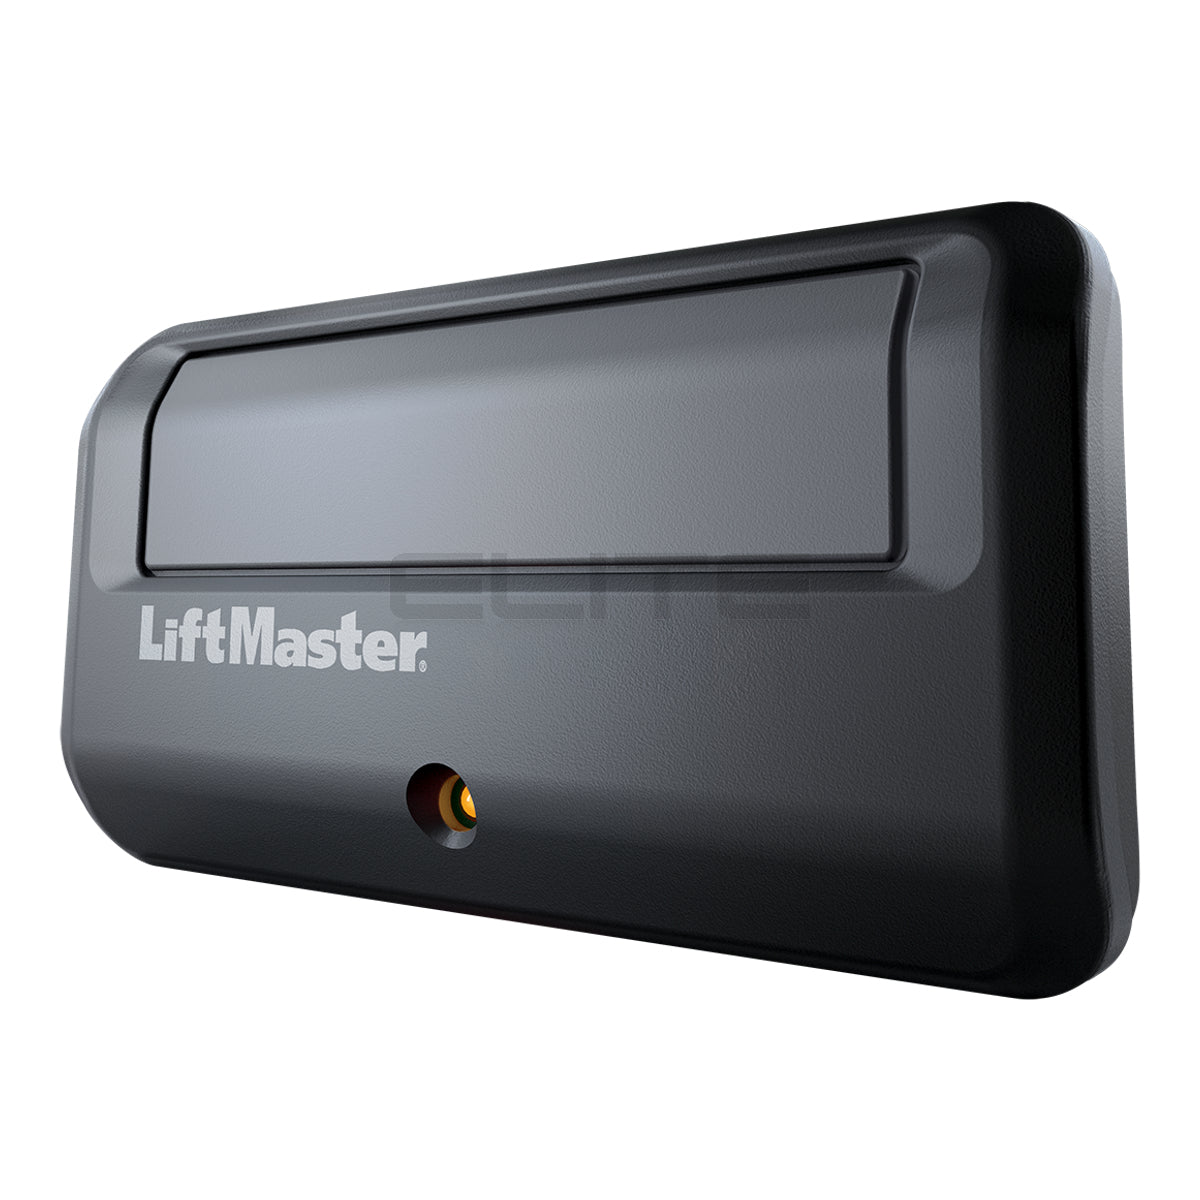 LIFTMASTER 891LM REMOTE CONTROL LEFT VIEW